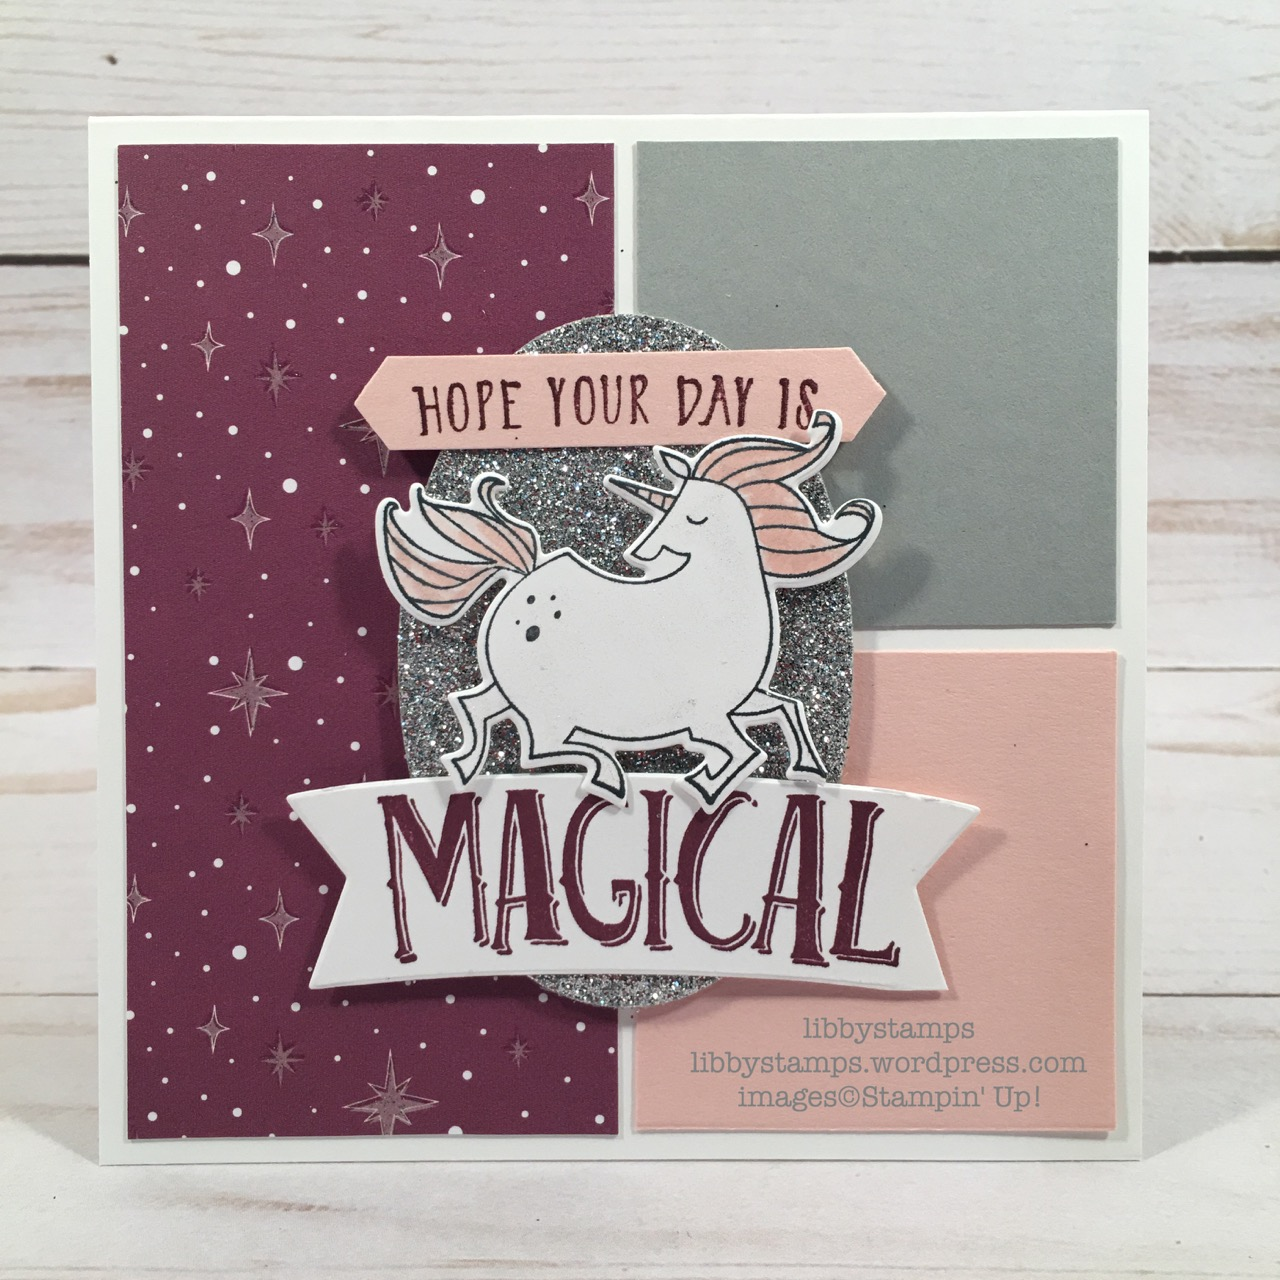 libbystamps, stampin up, Magical Mates Framelits, Magical Day, Magical Day Bundle, Myths & Magical DSP, Layering Ovals Framelits, Classic Label Punch, CCMC